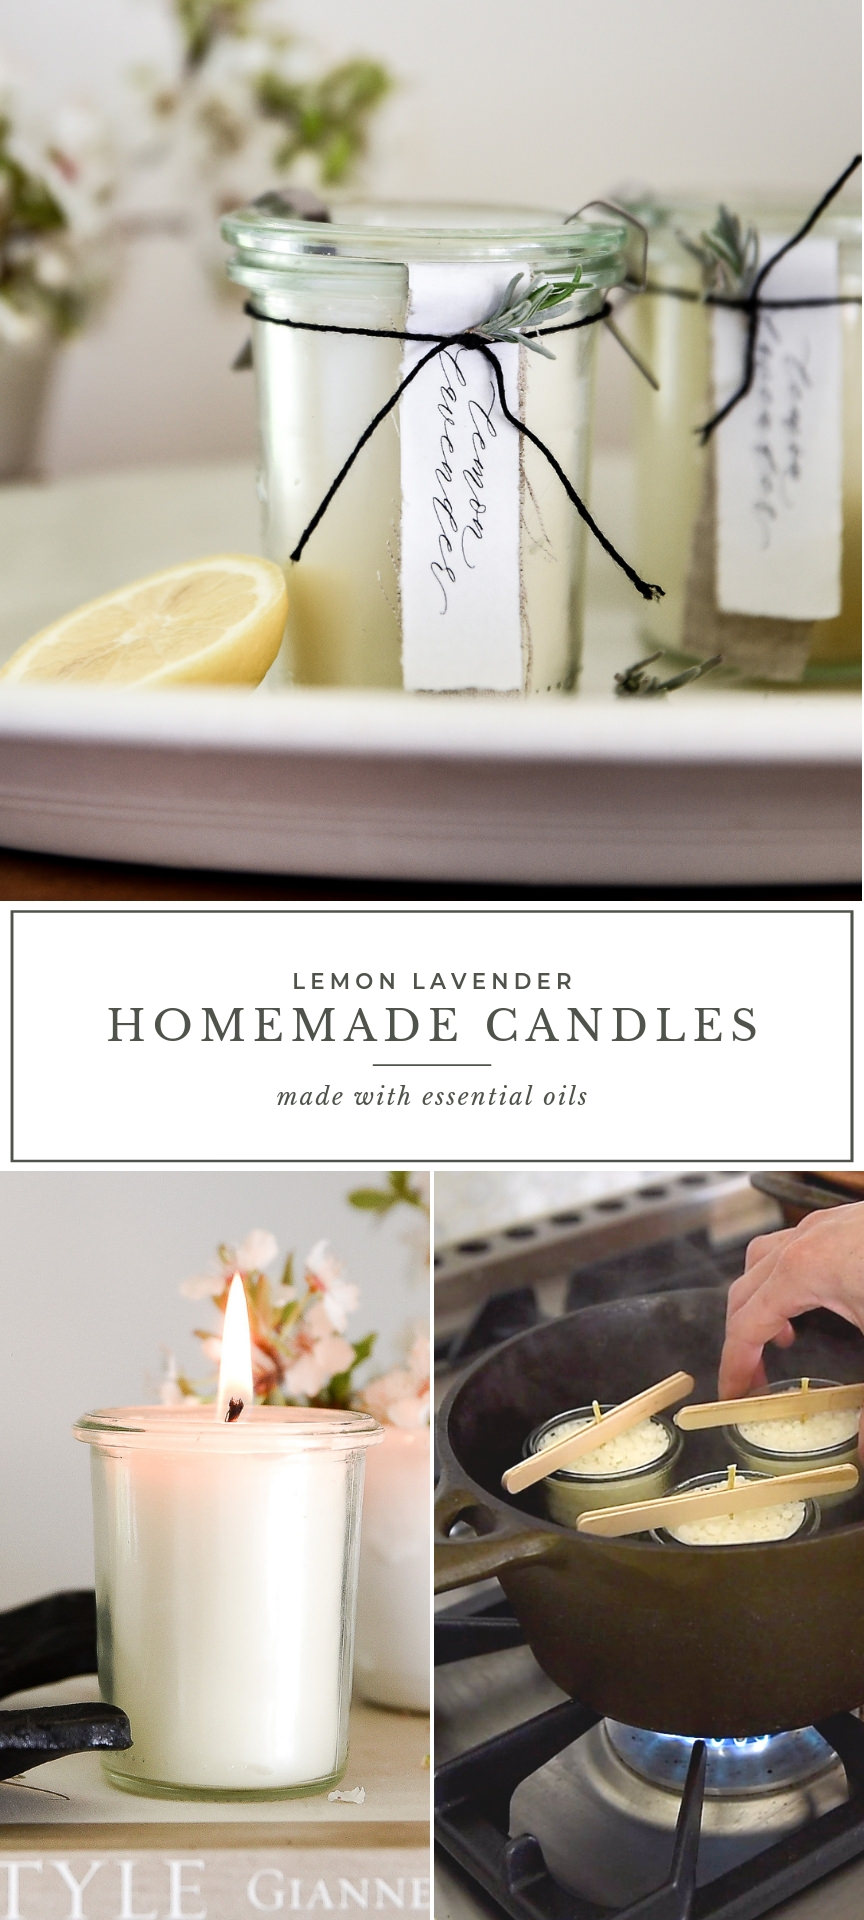 Learn how to make homemade candles with this DIY candle tutorial! These all natural homemade candles are scented with essnential oils! #greenliving #homemadecandles #essentialoils #diycandles #boxwoodavenue